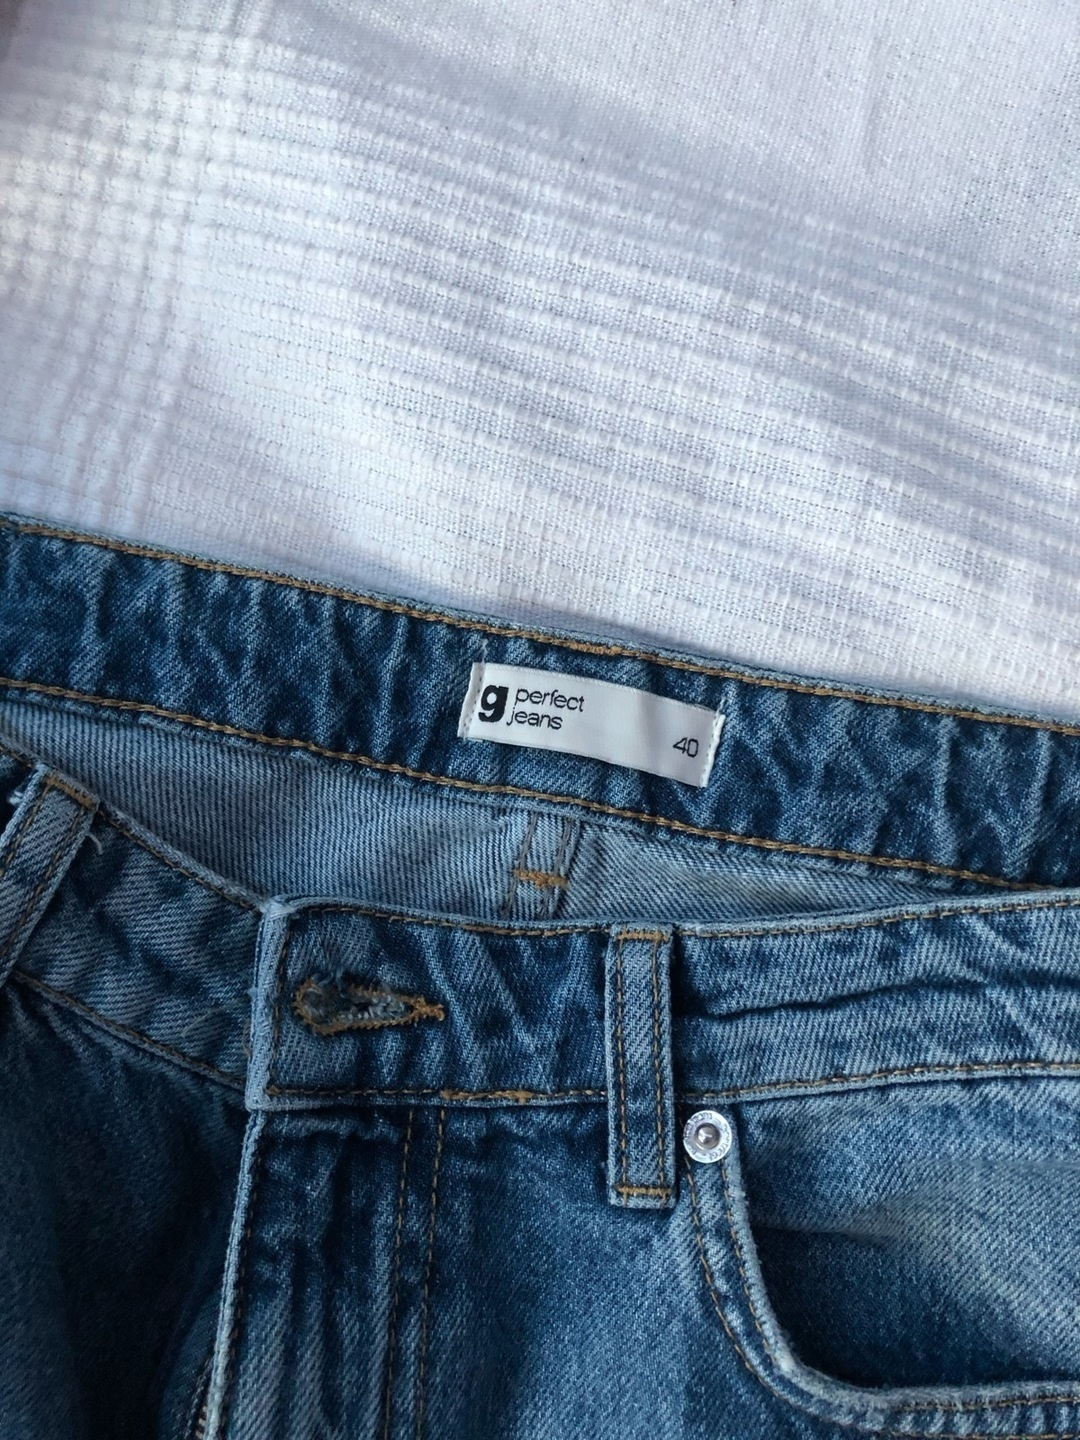 Damers bukser og jeans - GINA TRICOT photo 3